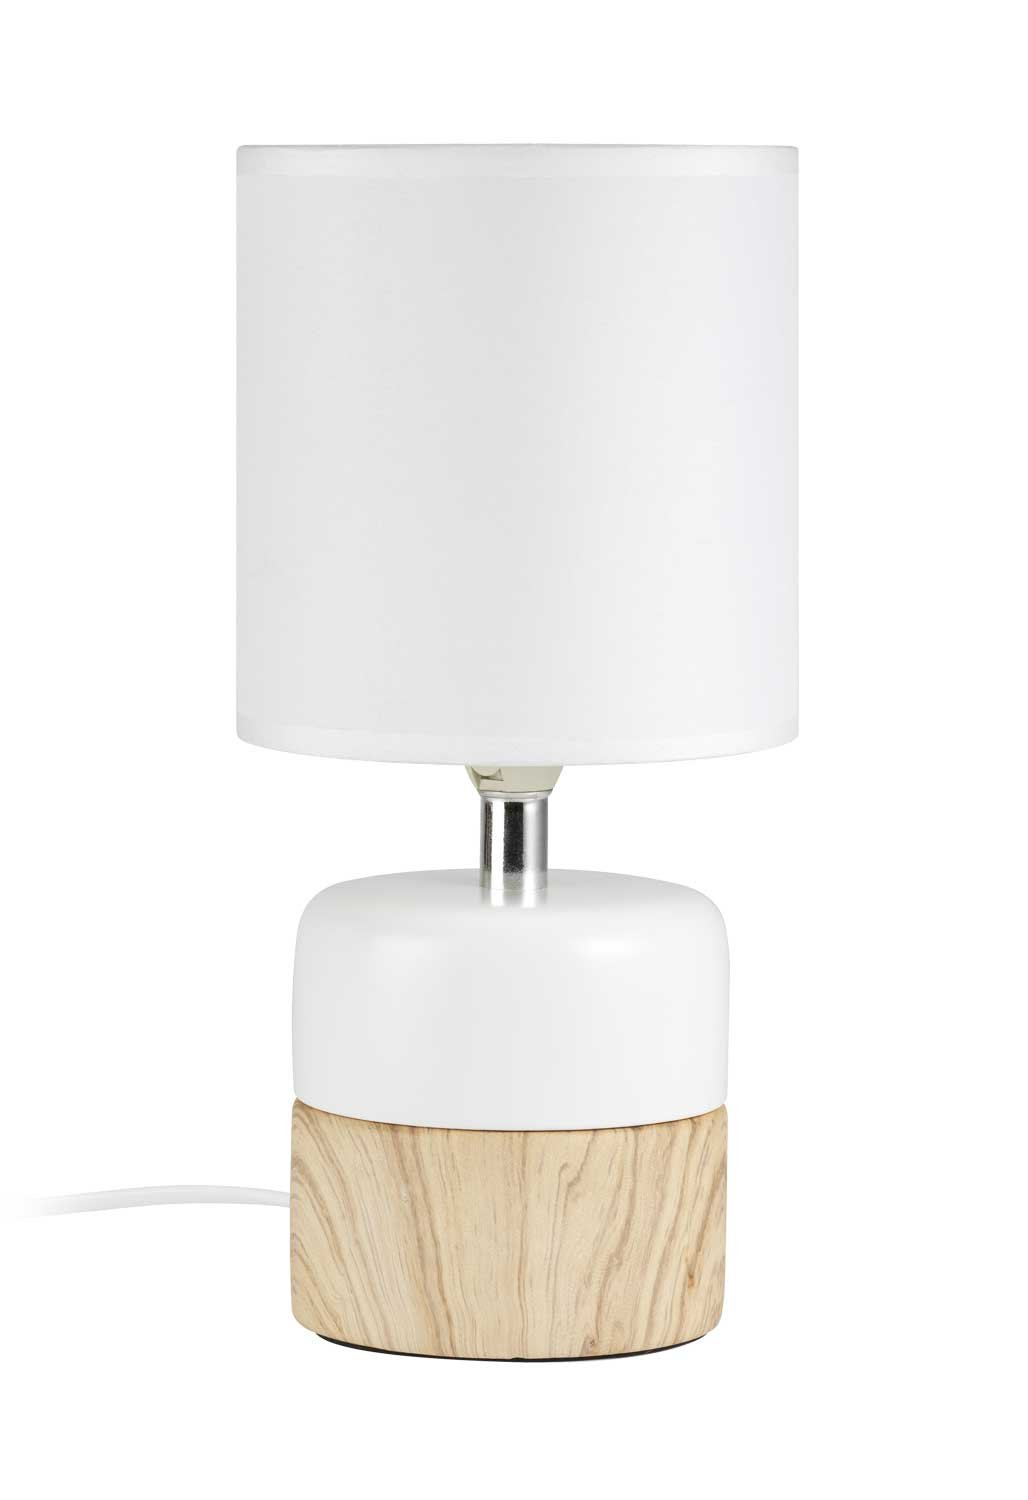 lampe de chevet tactile ikea awesome lampe de bureau fille lampe de bureau tactile ikea with. Black Bedroom Furniture Sets. Home Design Ideas